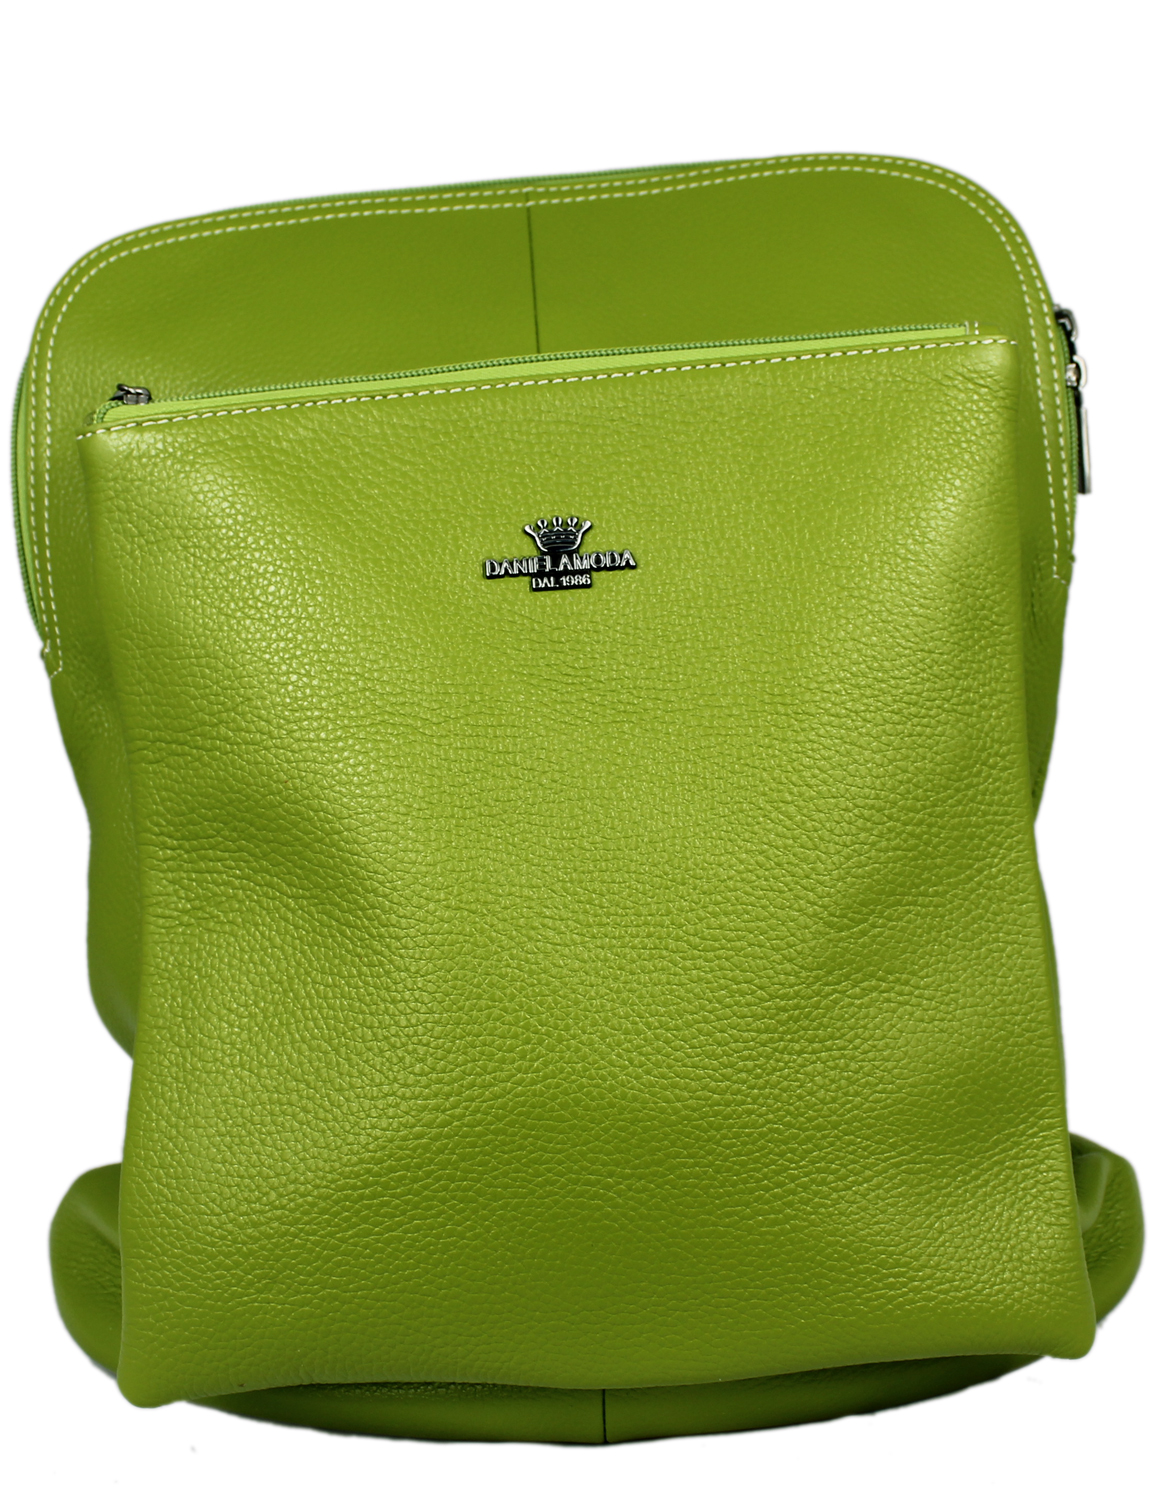 Florence Soft Leather Rucksack in Green with Black Trim